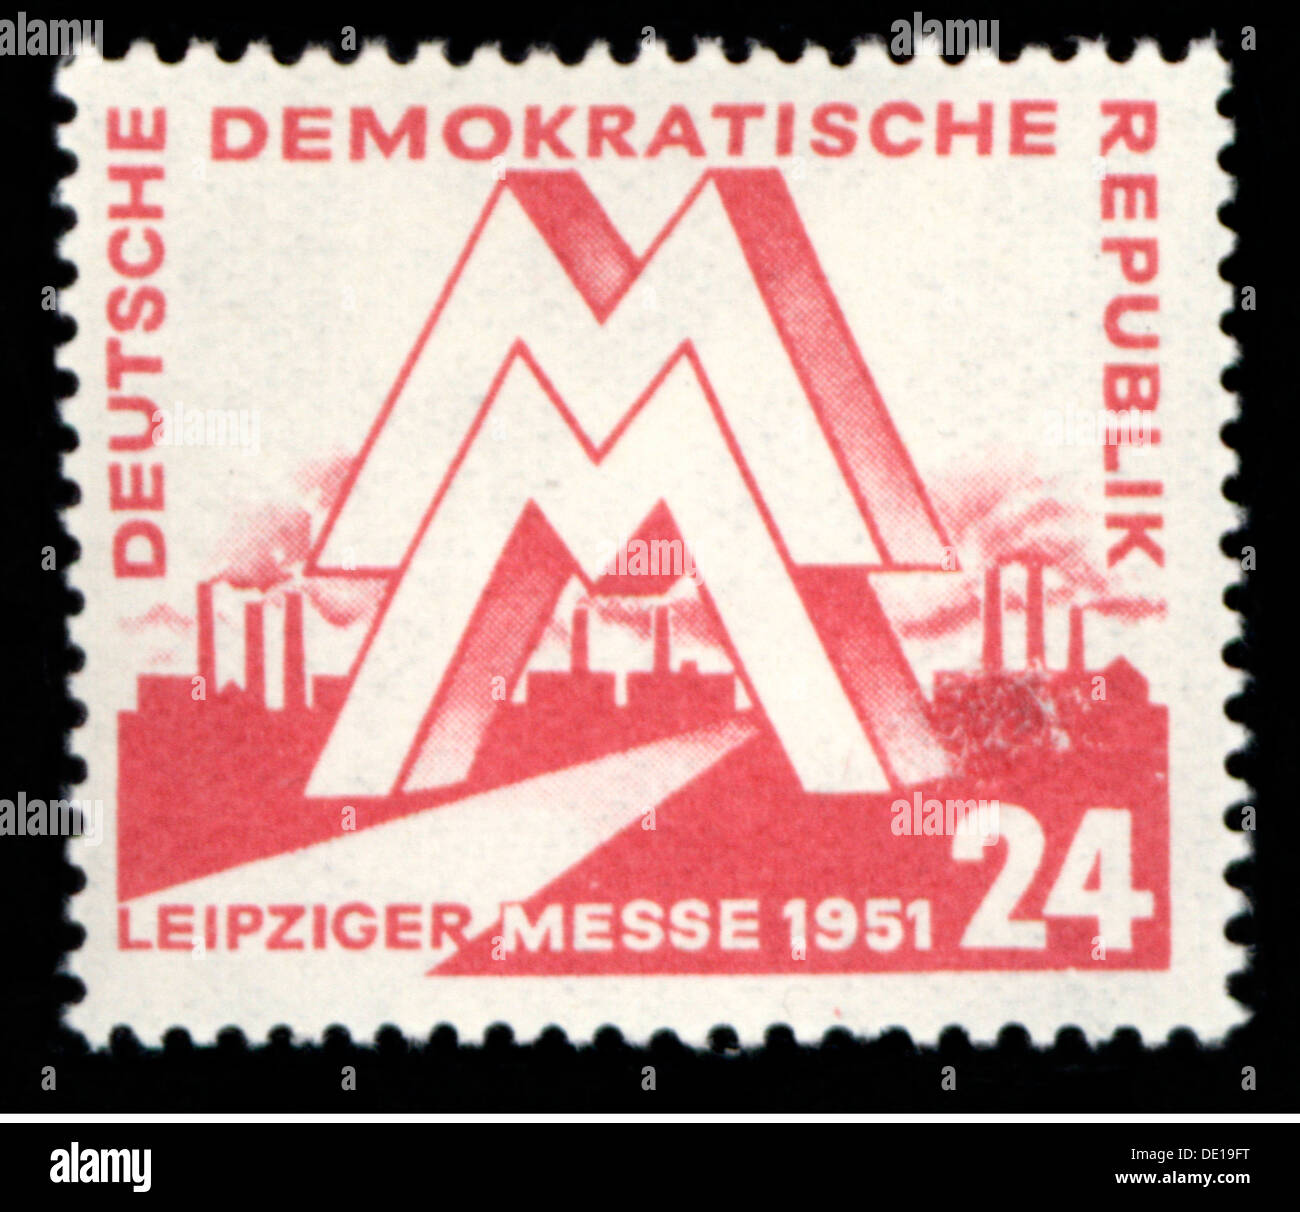 mail, postage stamps, Germany, Deutsche Post of the German Democratic Republic, 24 pfennig postage stamp, design by Egon Pruggmayer, date of issue 4.3.1951, valid until 31.3.1952, motif: Leipzig spring trade fair 1951, East-Germany, East Germany, GDR, DDR, Leipzig fair, Leipzig, symbol, symbols, emblem, emblems, logo, logos, fair sign, MM, industry, industries, trade, economy, postal stamp, postal stamps, 1950s, 50s, 20th century, mail, post, republic, republics, pfennig, penny, postage stamp, postage stamps, design, designs, historic, historical, Additional-Rights-Clearences-NA - Stock Image